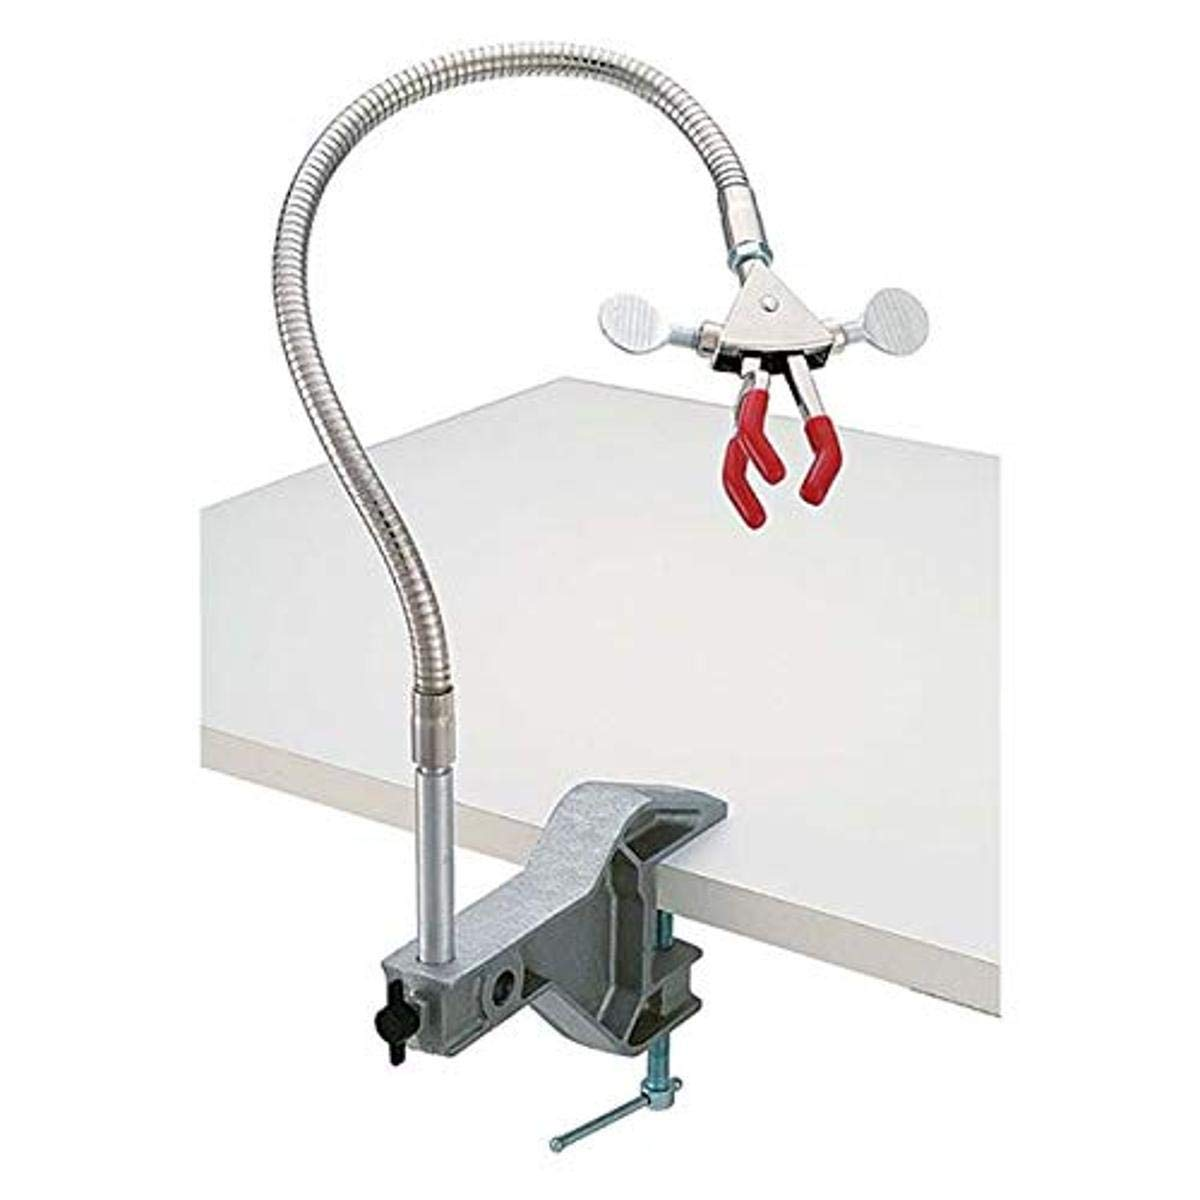 OHAUS CLS-FLEXBM Ultra Flex 12 with Special price Bench Z New color Nickel-Plated Clamp